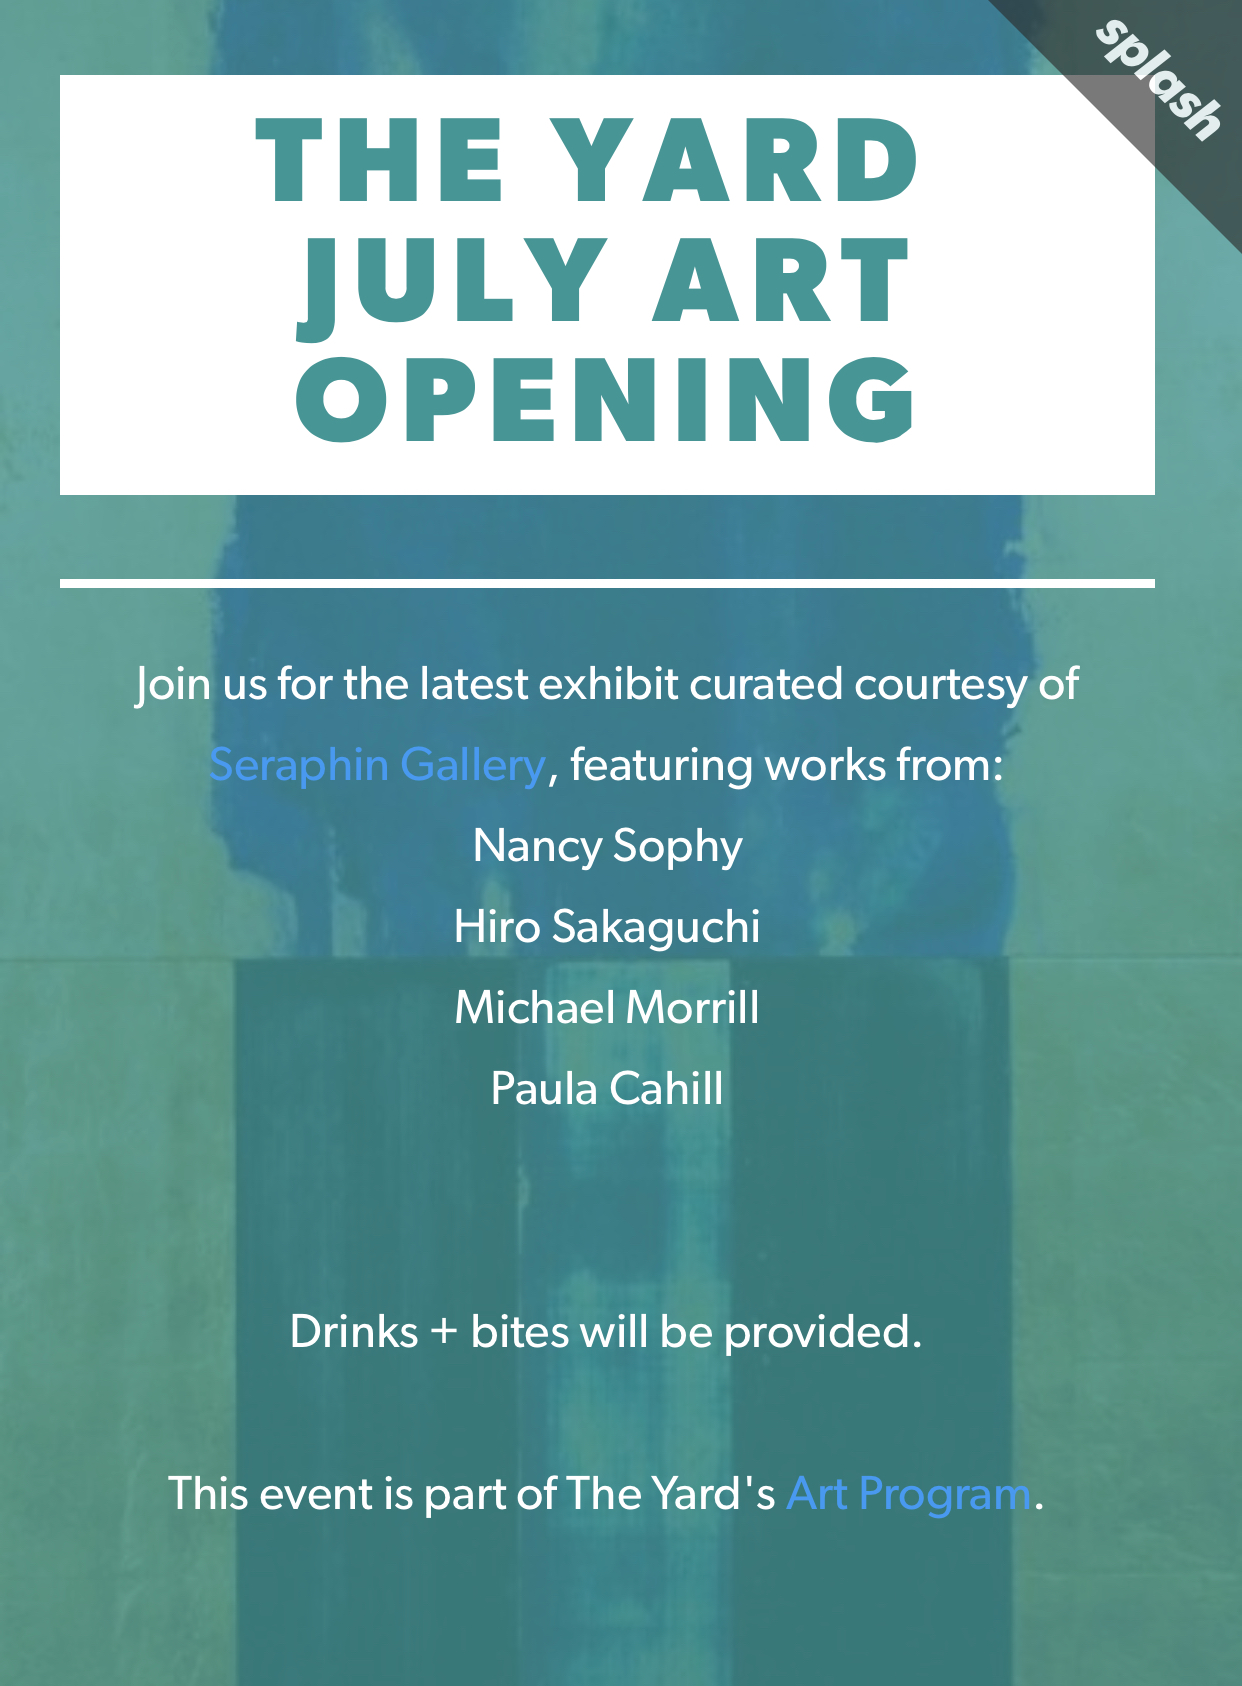 For more information and to RSVP:   https://artintheyardjuly.splashthat.com/